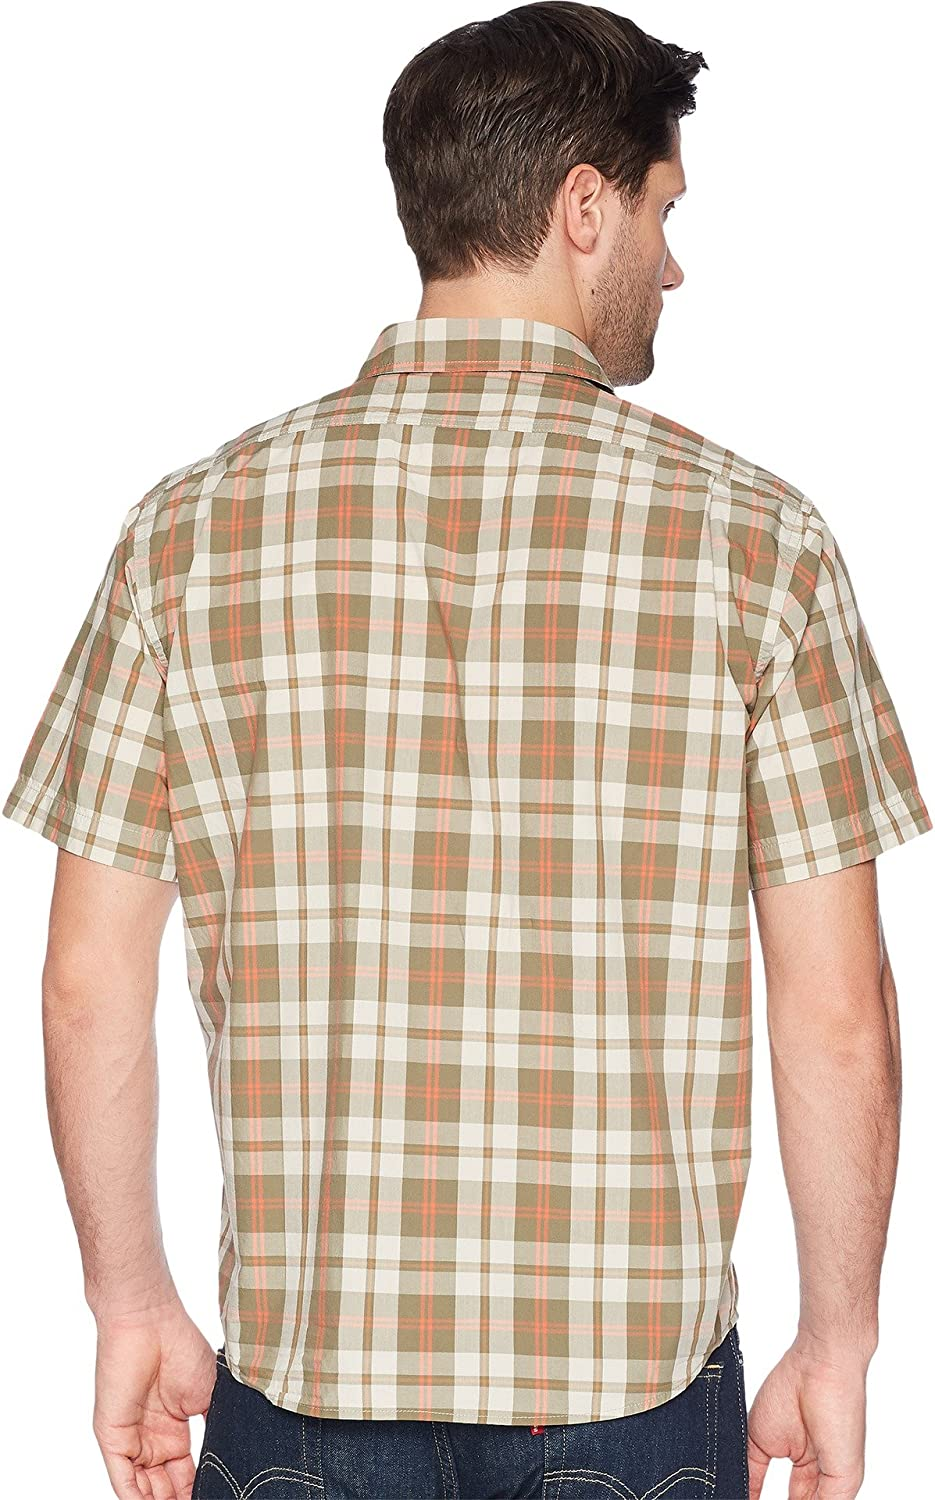 145cad0f65660 Filson Men s Short Sleeve Feather Cloth Shirt at Amazon Men s Clothing  store